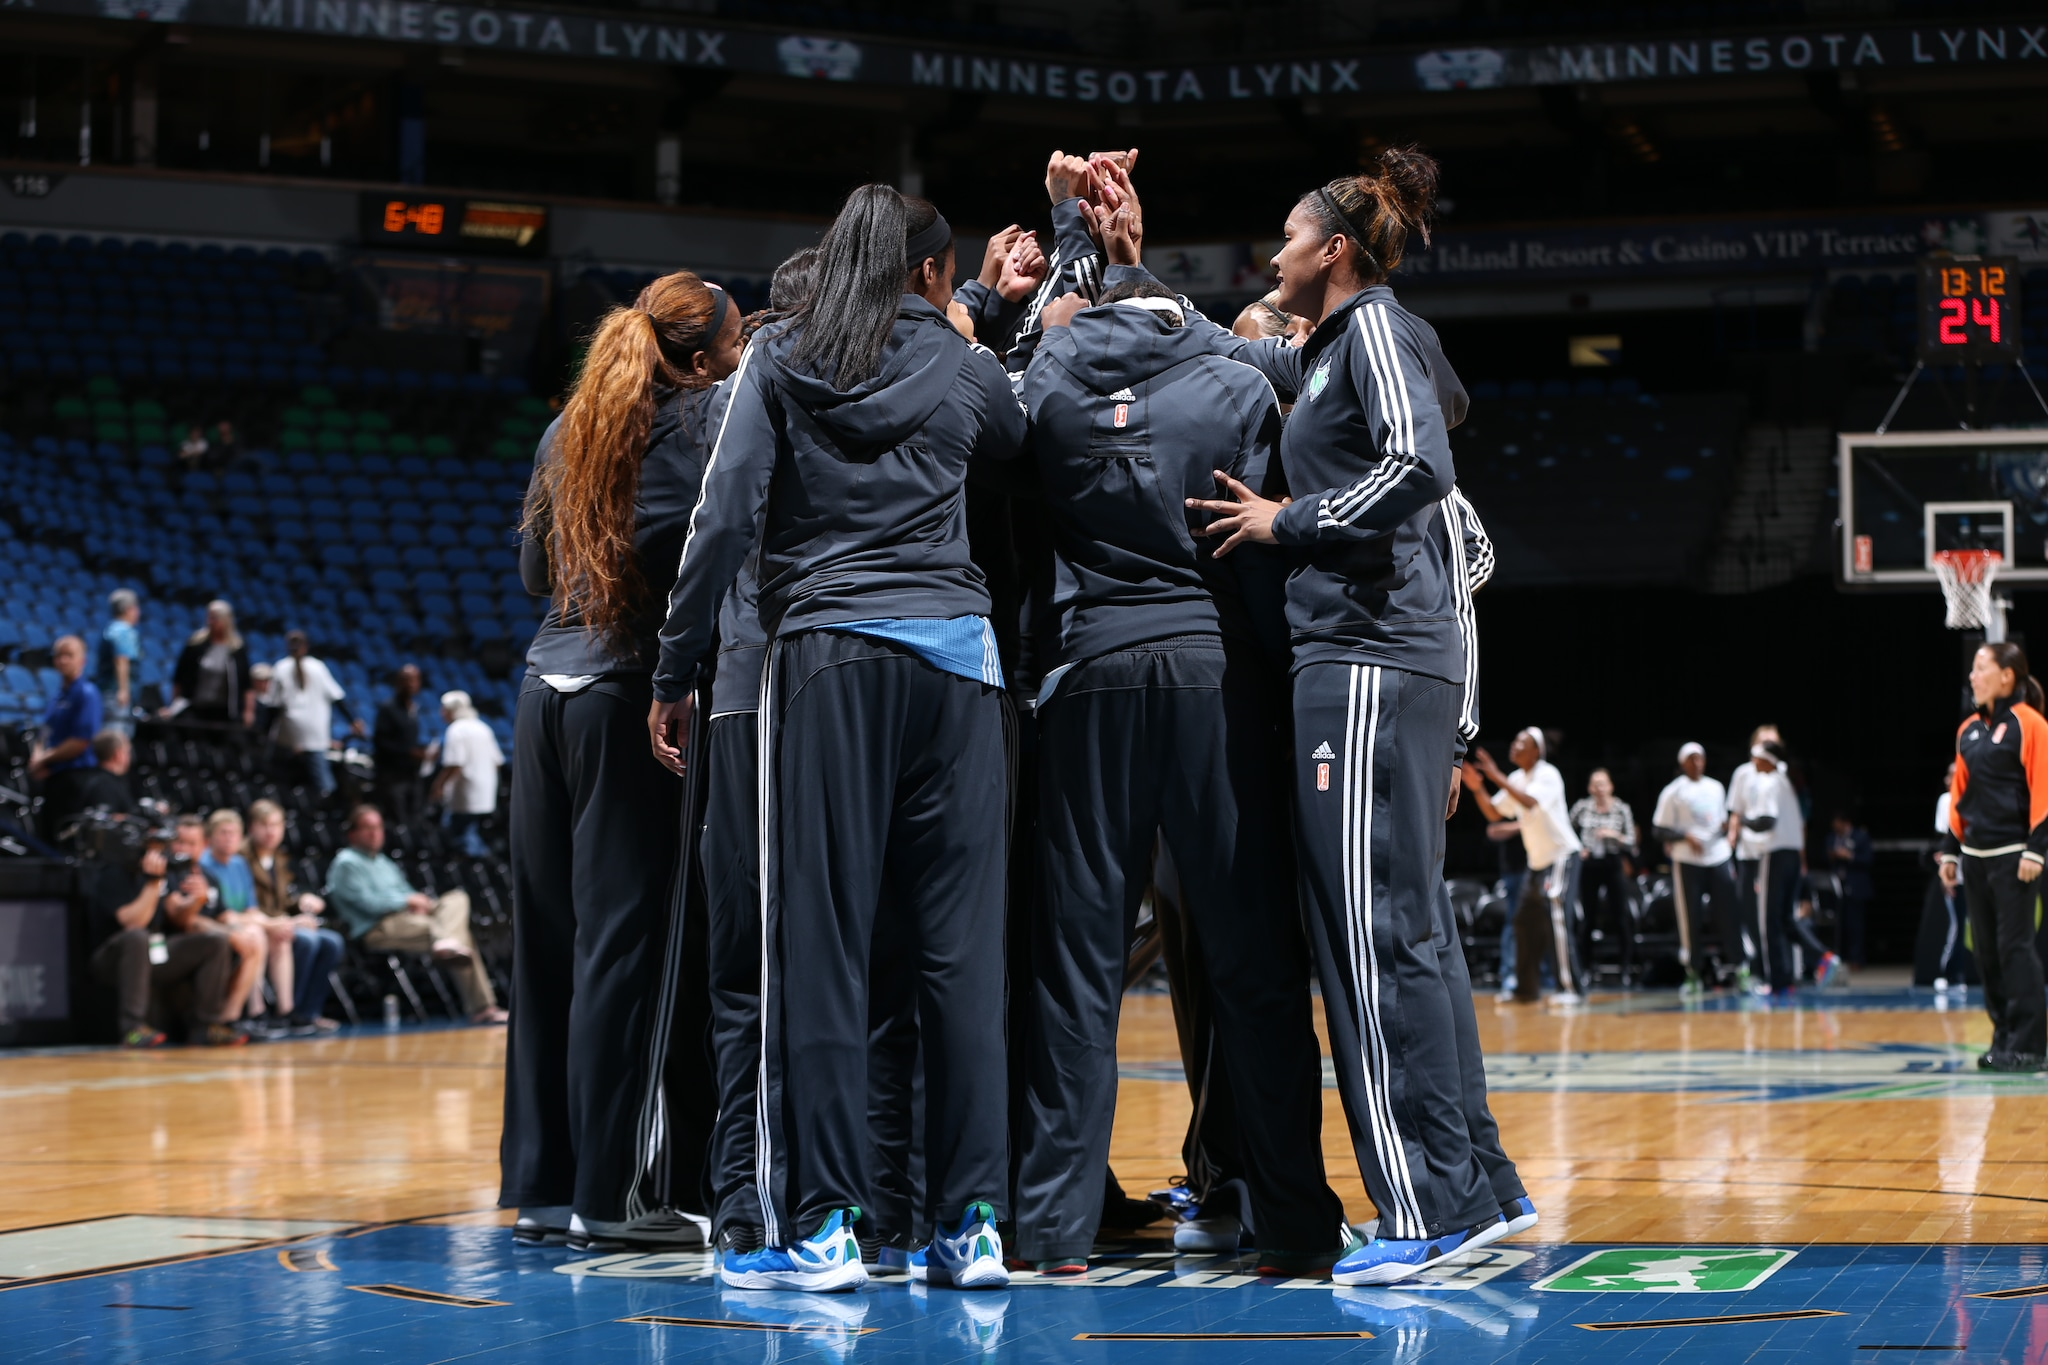 MINNEAPOLIS, MN - JUNE 1:  The Minnesota Lynx huddle before the WNBA Preseason game against the New York Liberty on June 1, 2015 at Target Center in Minneapolis, Minnesota. NOTE TO USER: User expressly acknowledges and agrees that, by downloading and or using this Photograph, user is consenting to the terms and conditions of the Getty Images License Agreement. Mandatory Copyright Notice: Copyright 2015 NBAE (Photo by David Sherman/NBAE via Getty Images)